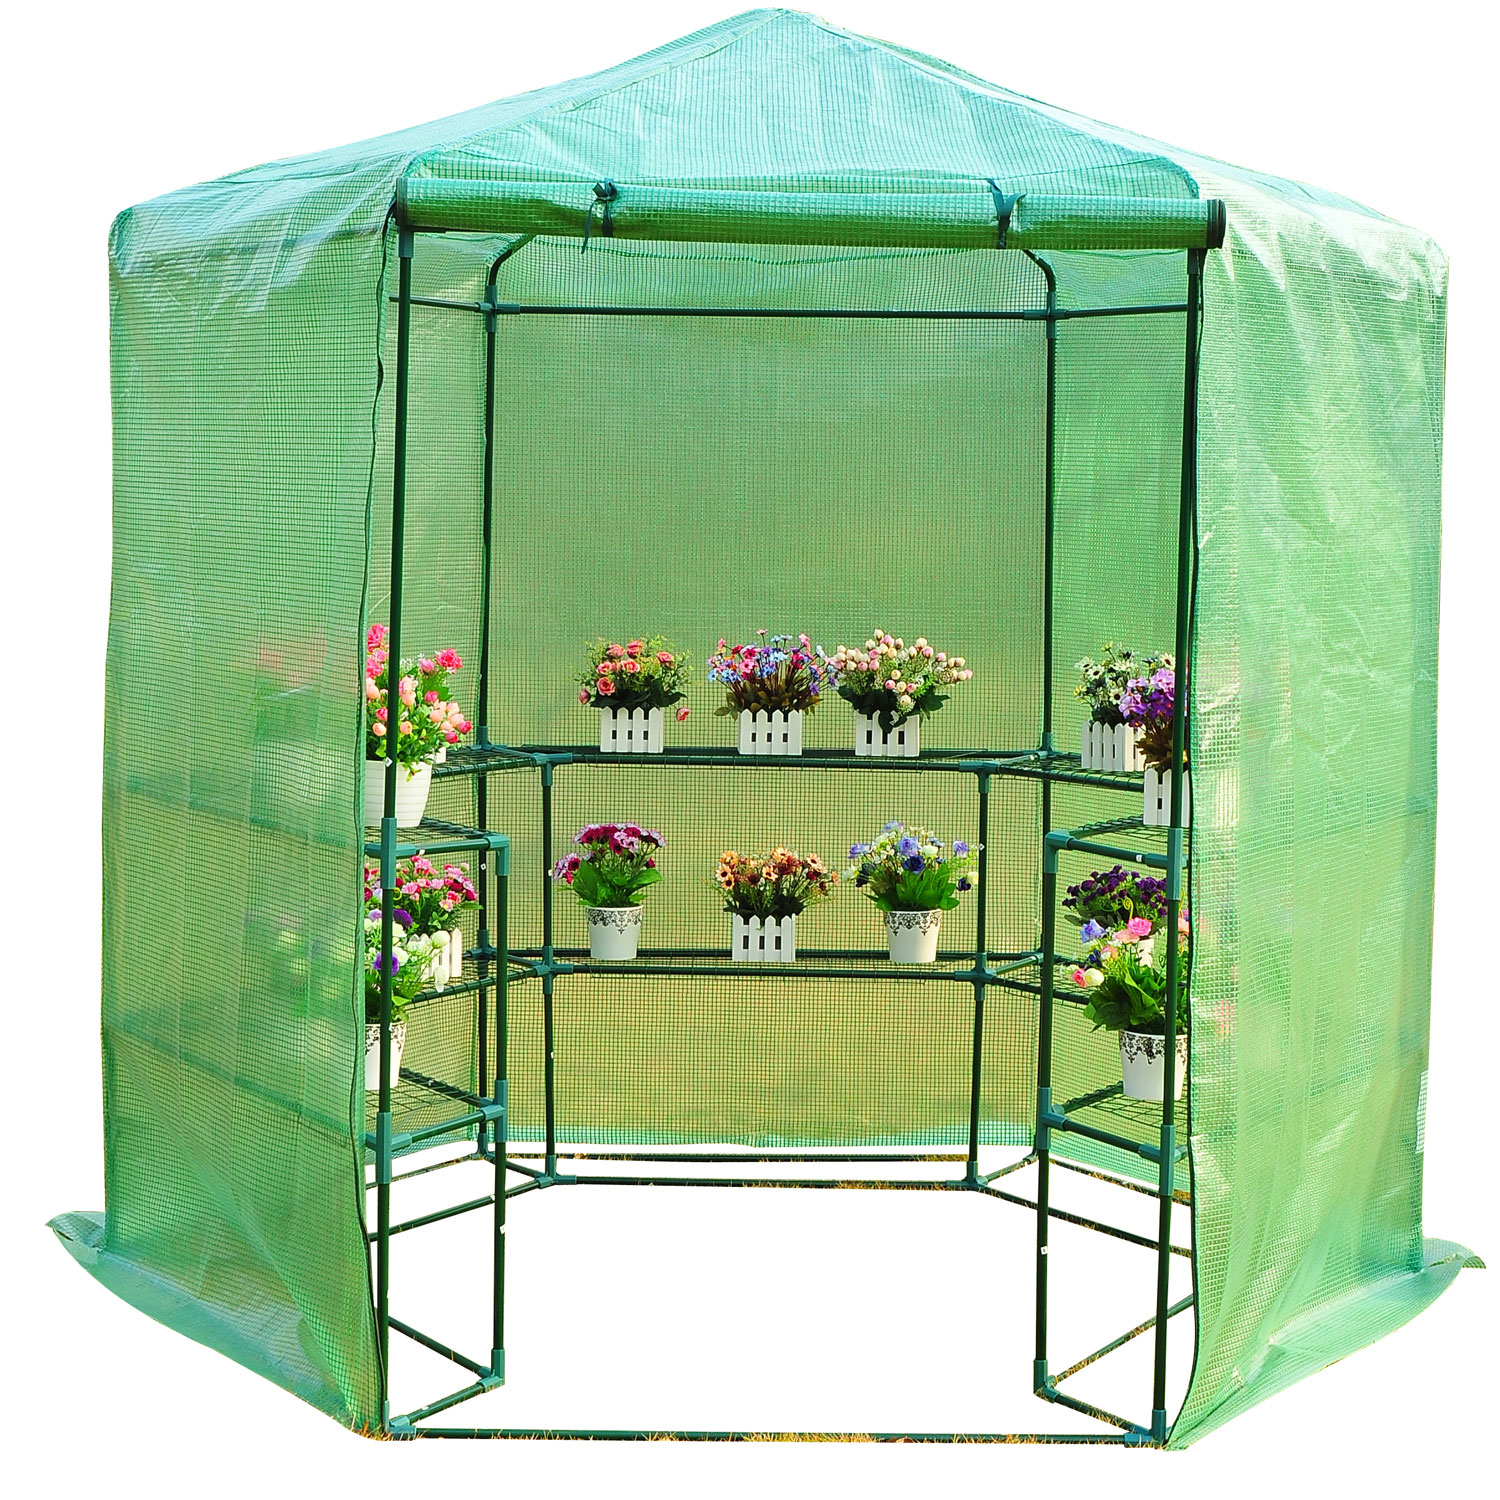 Outsunny 7.5u0027 Hexagonal 3 Tier Shelf Walk In Portable Greenhouse